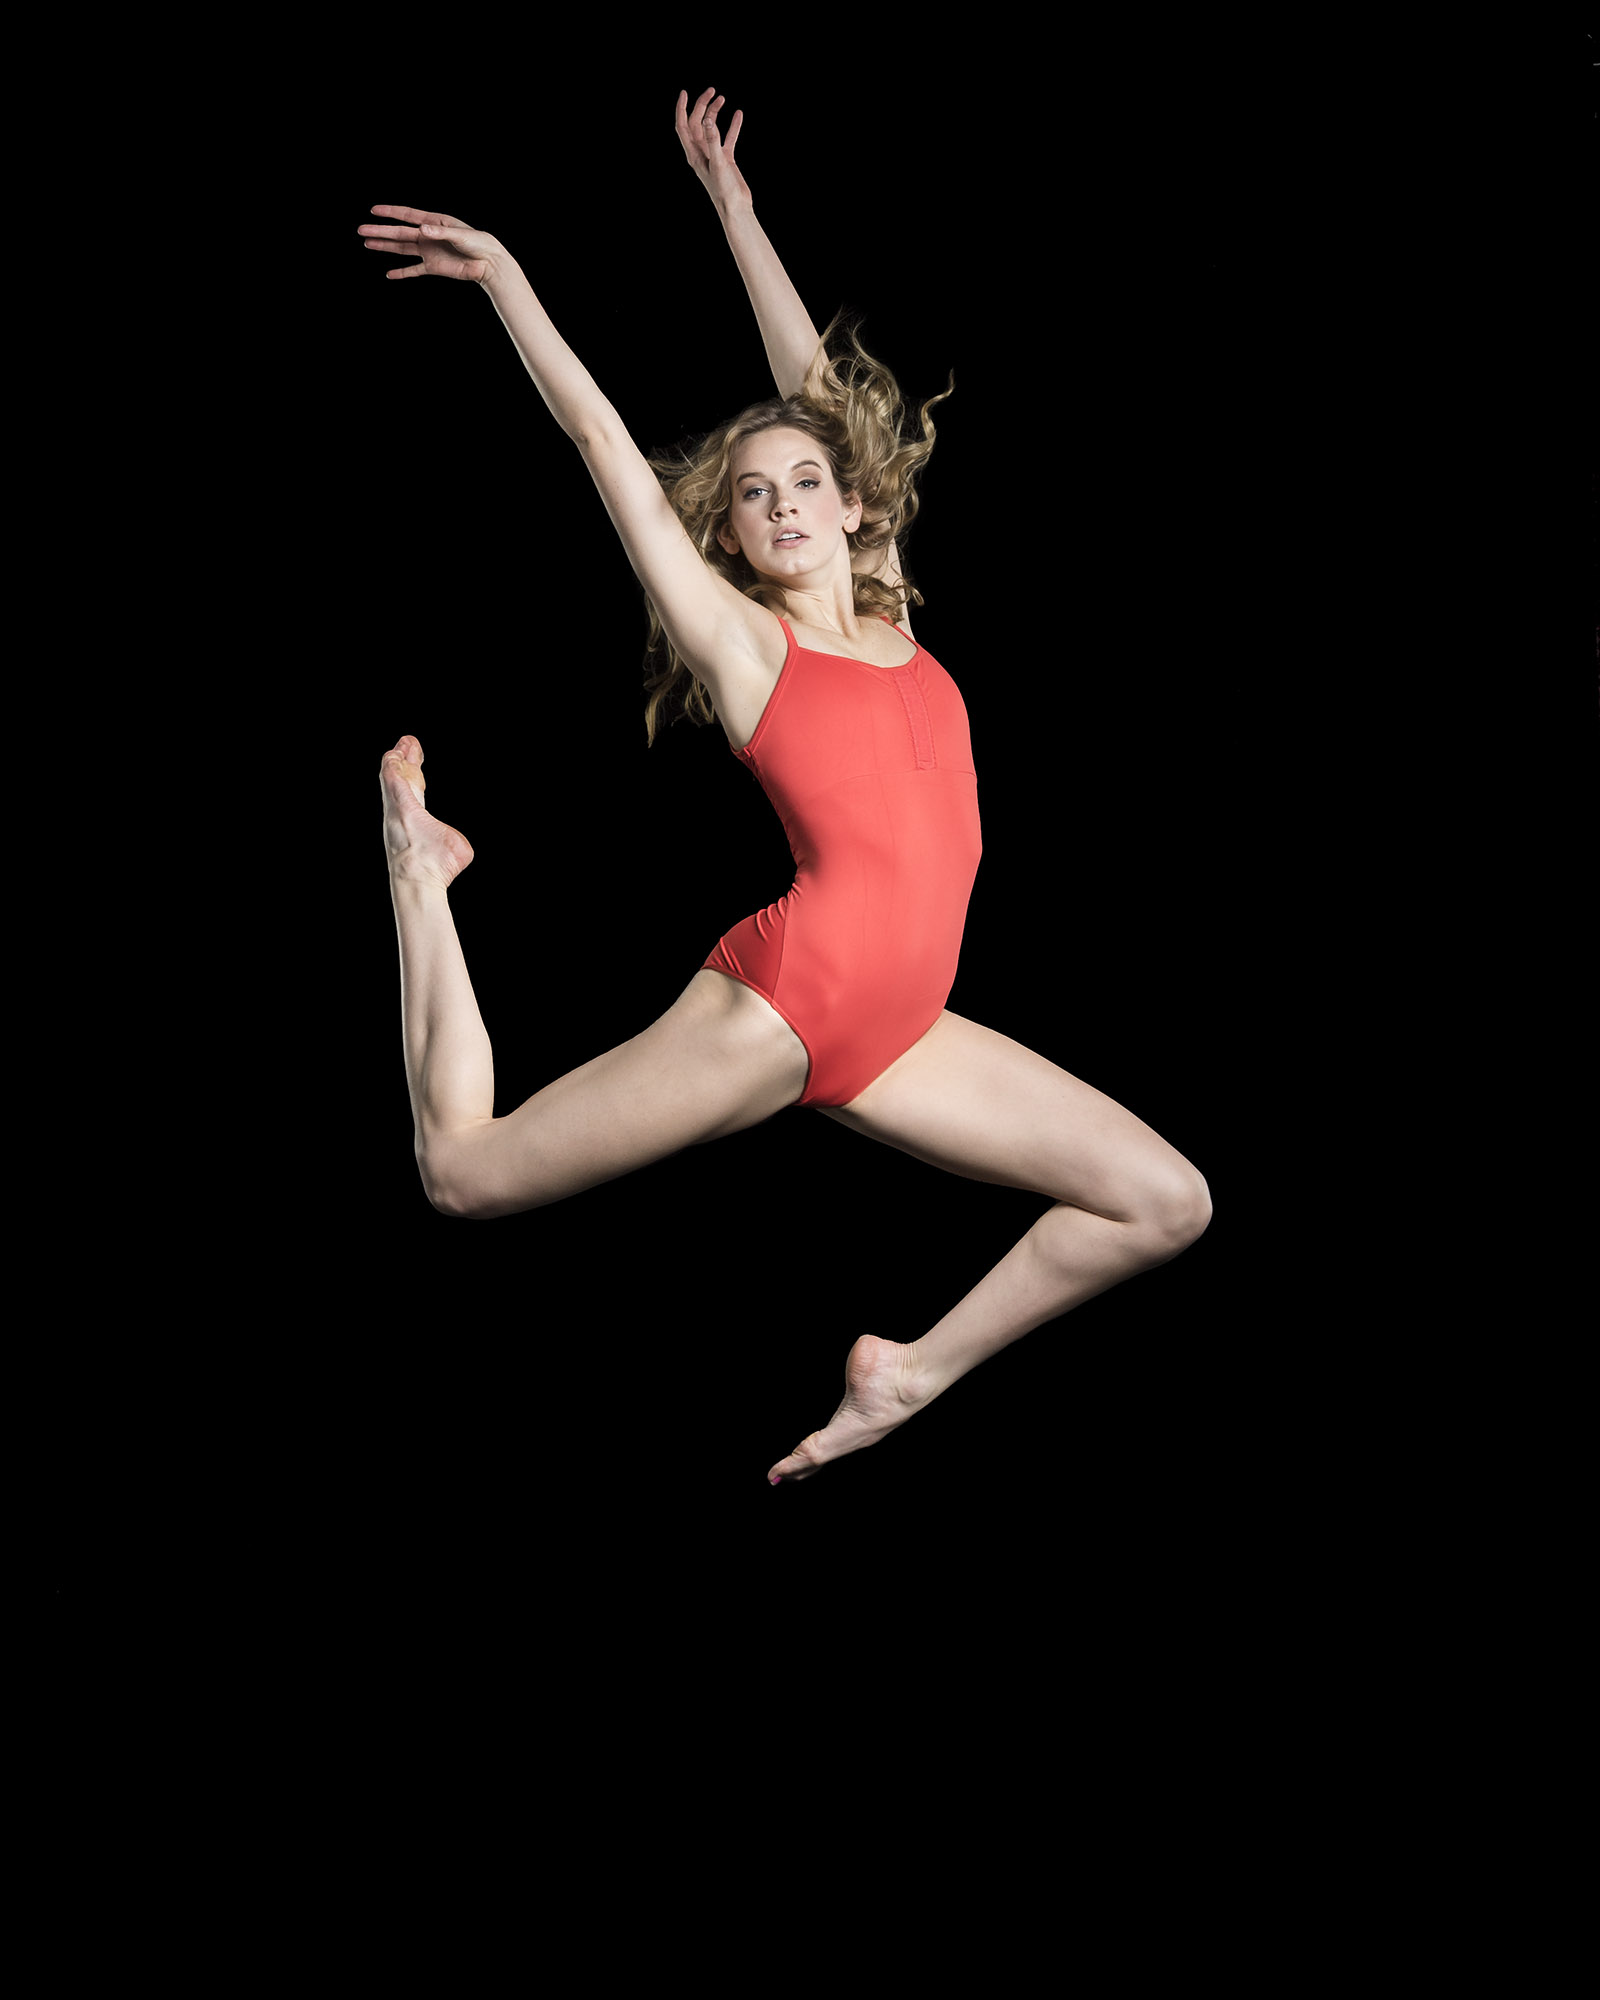 dancer-jumping-in-leotard.jpg